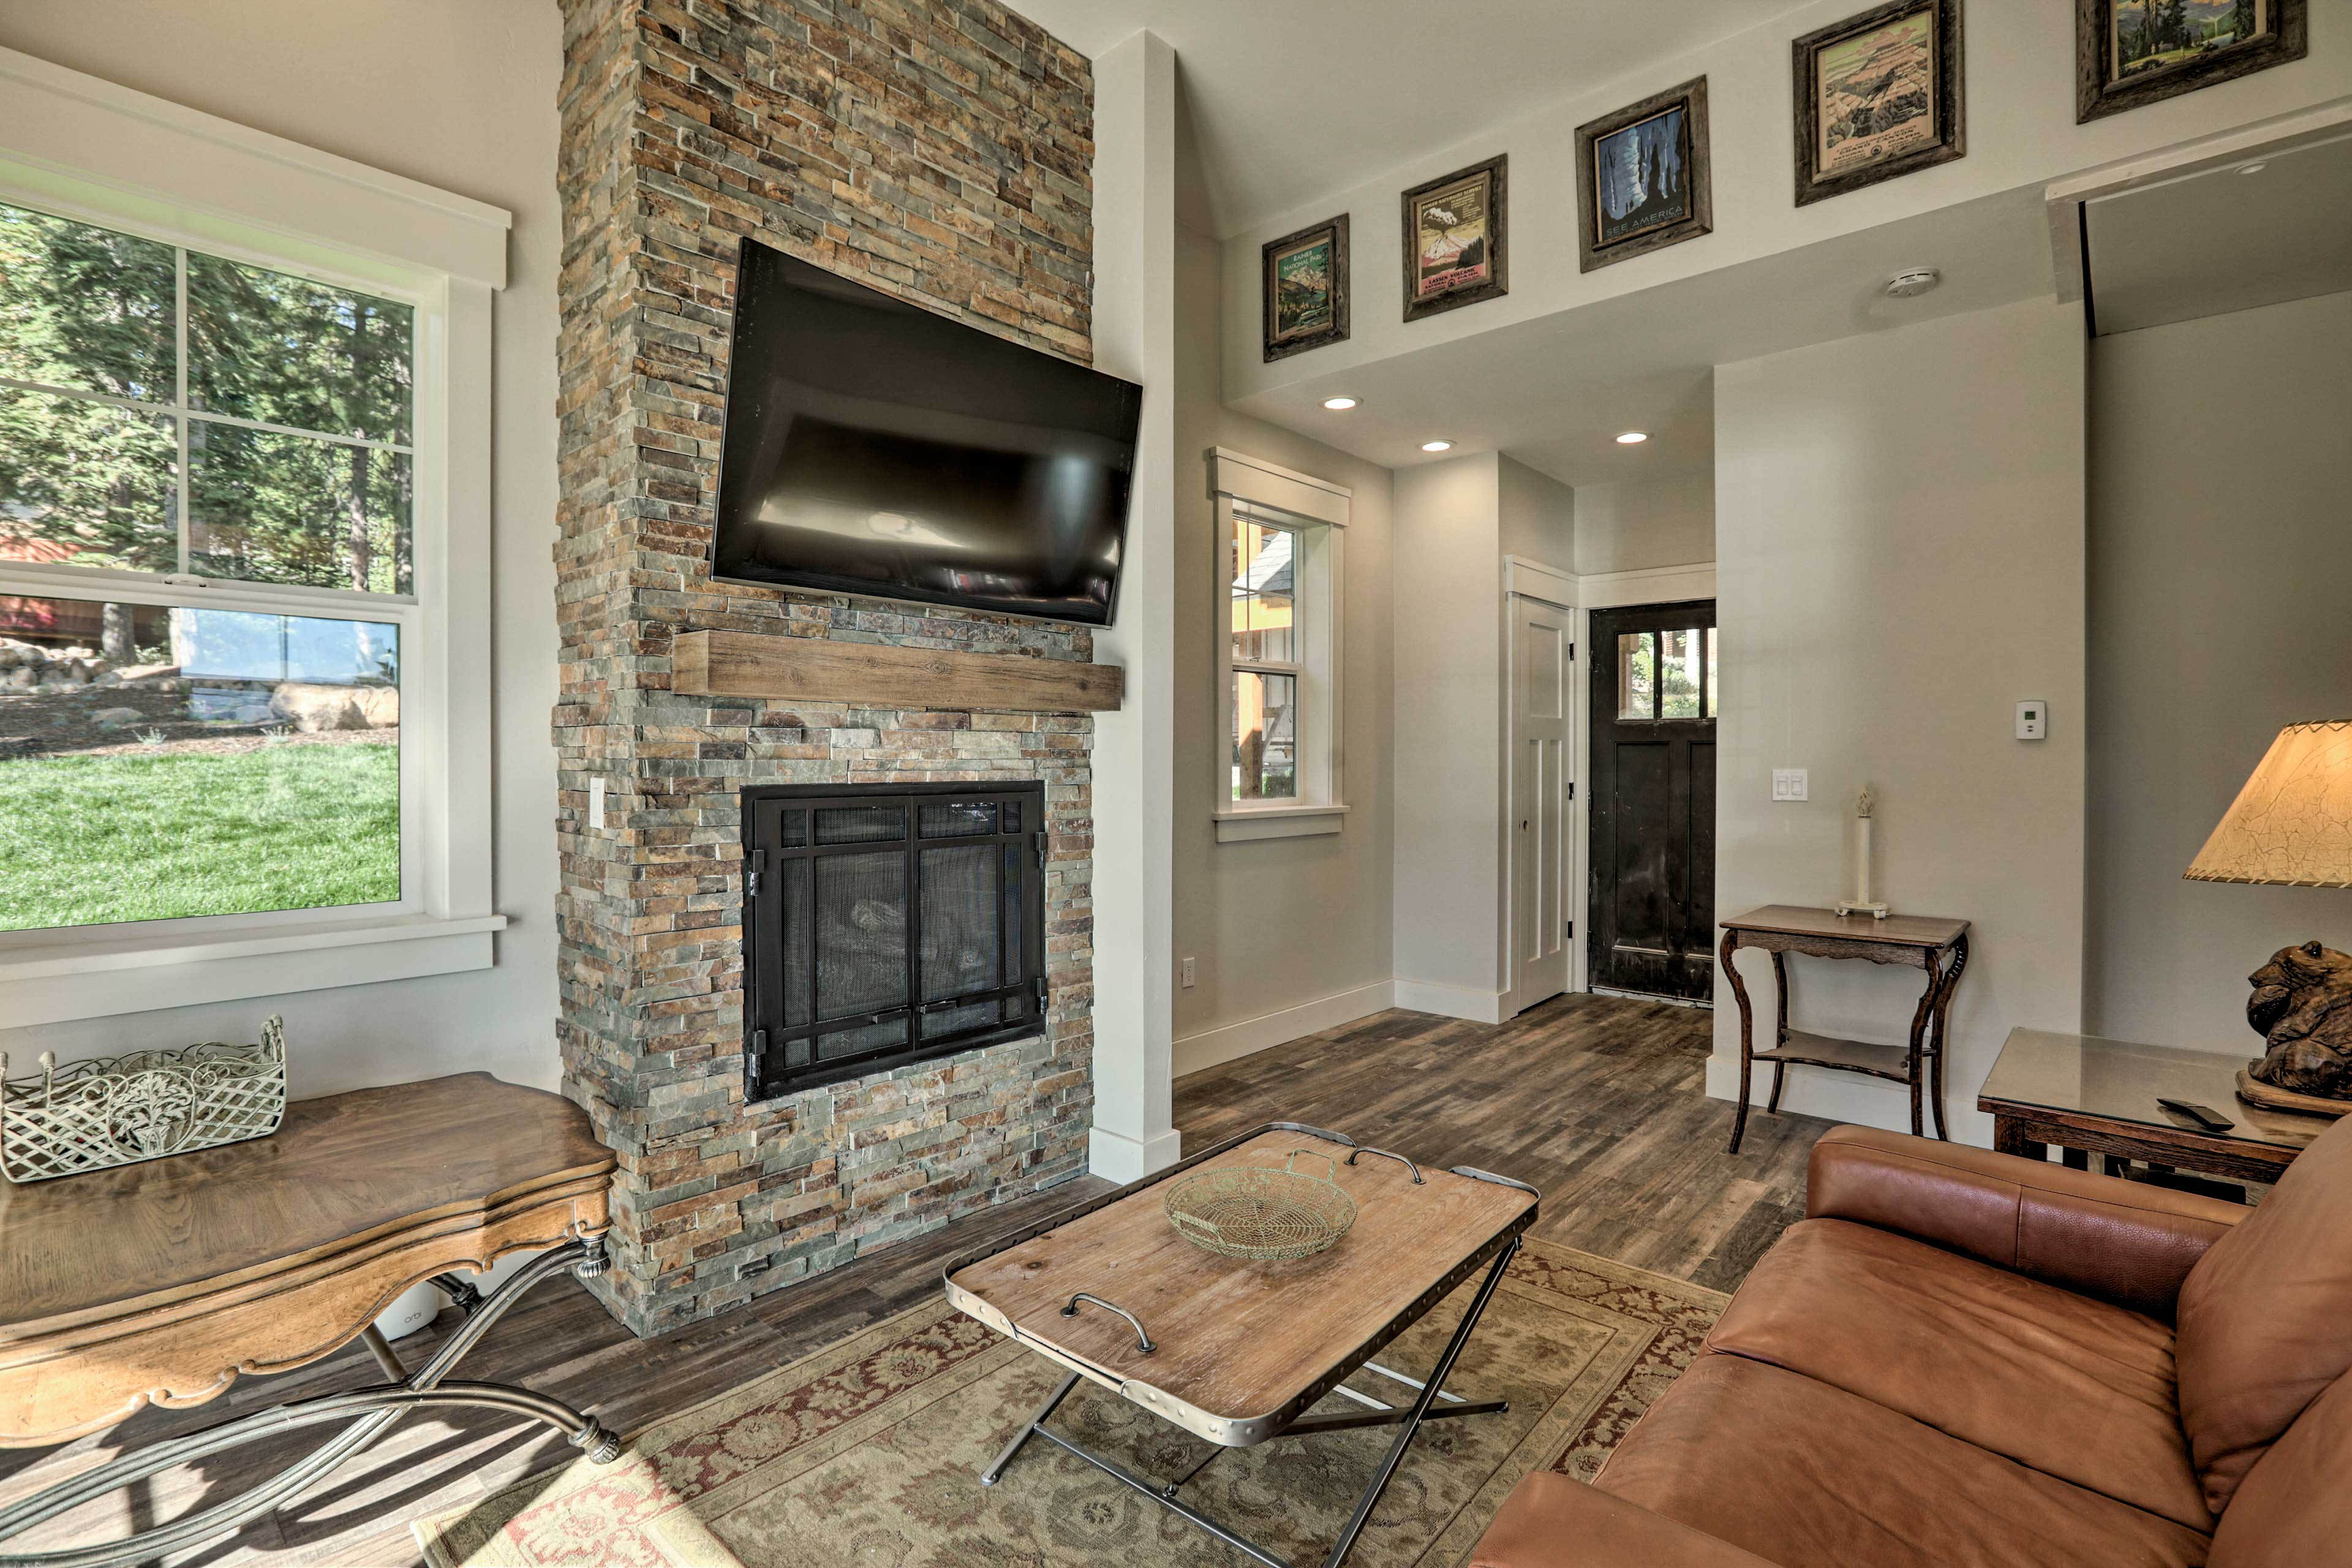 Cozy up to the fireplace while you watch a movie in your private Guest House!